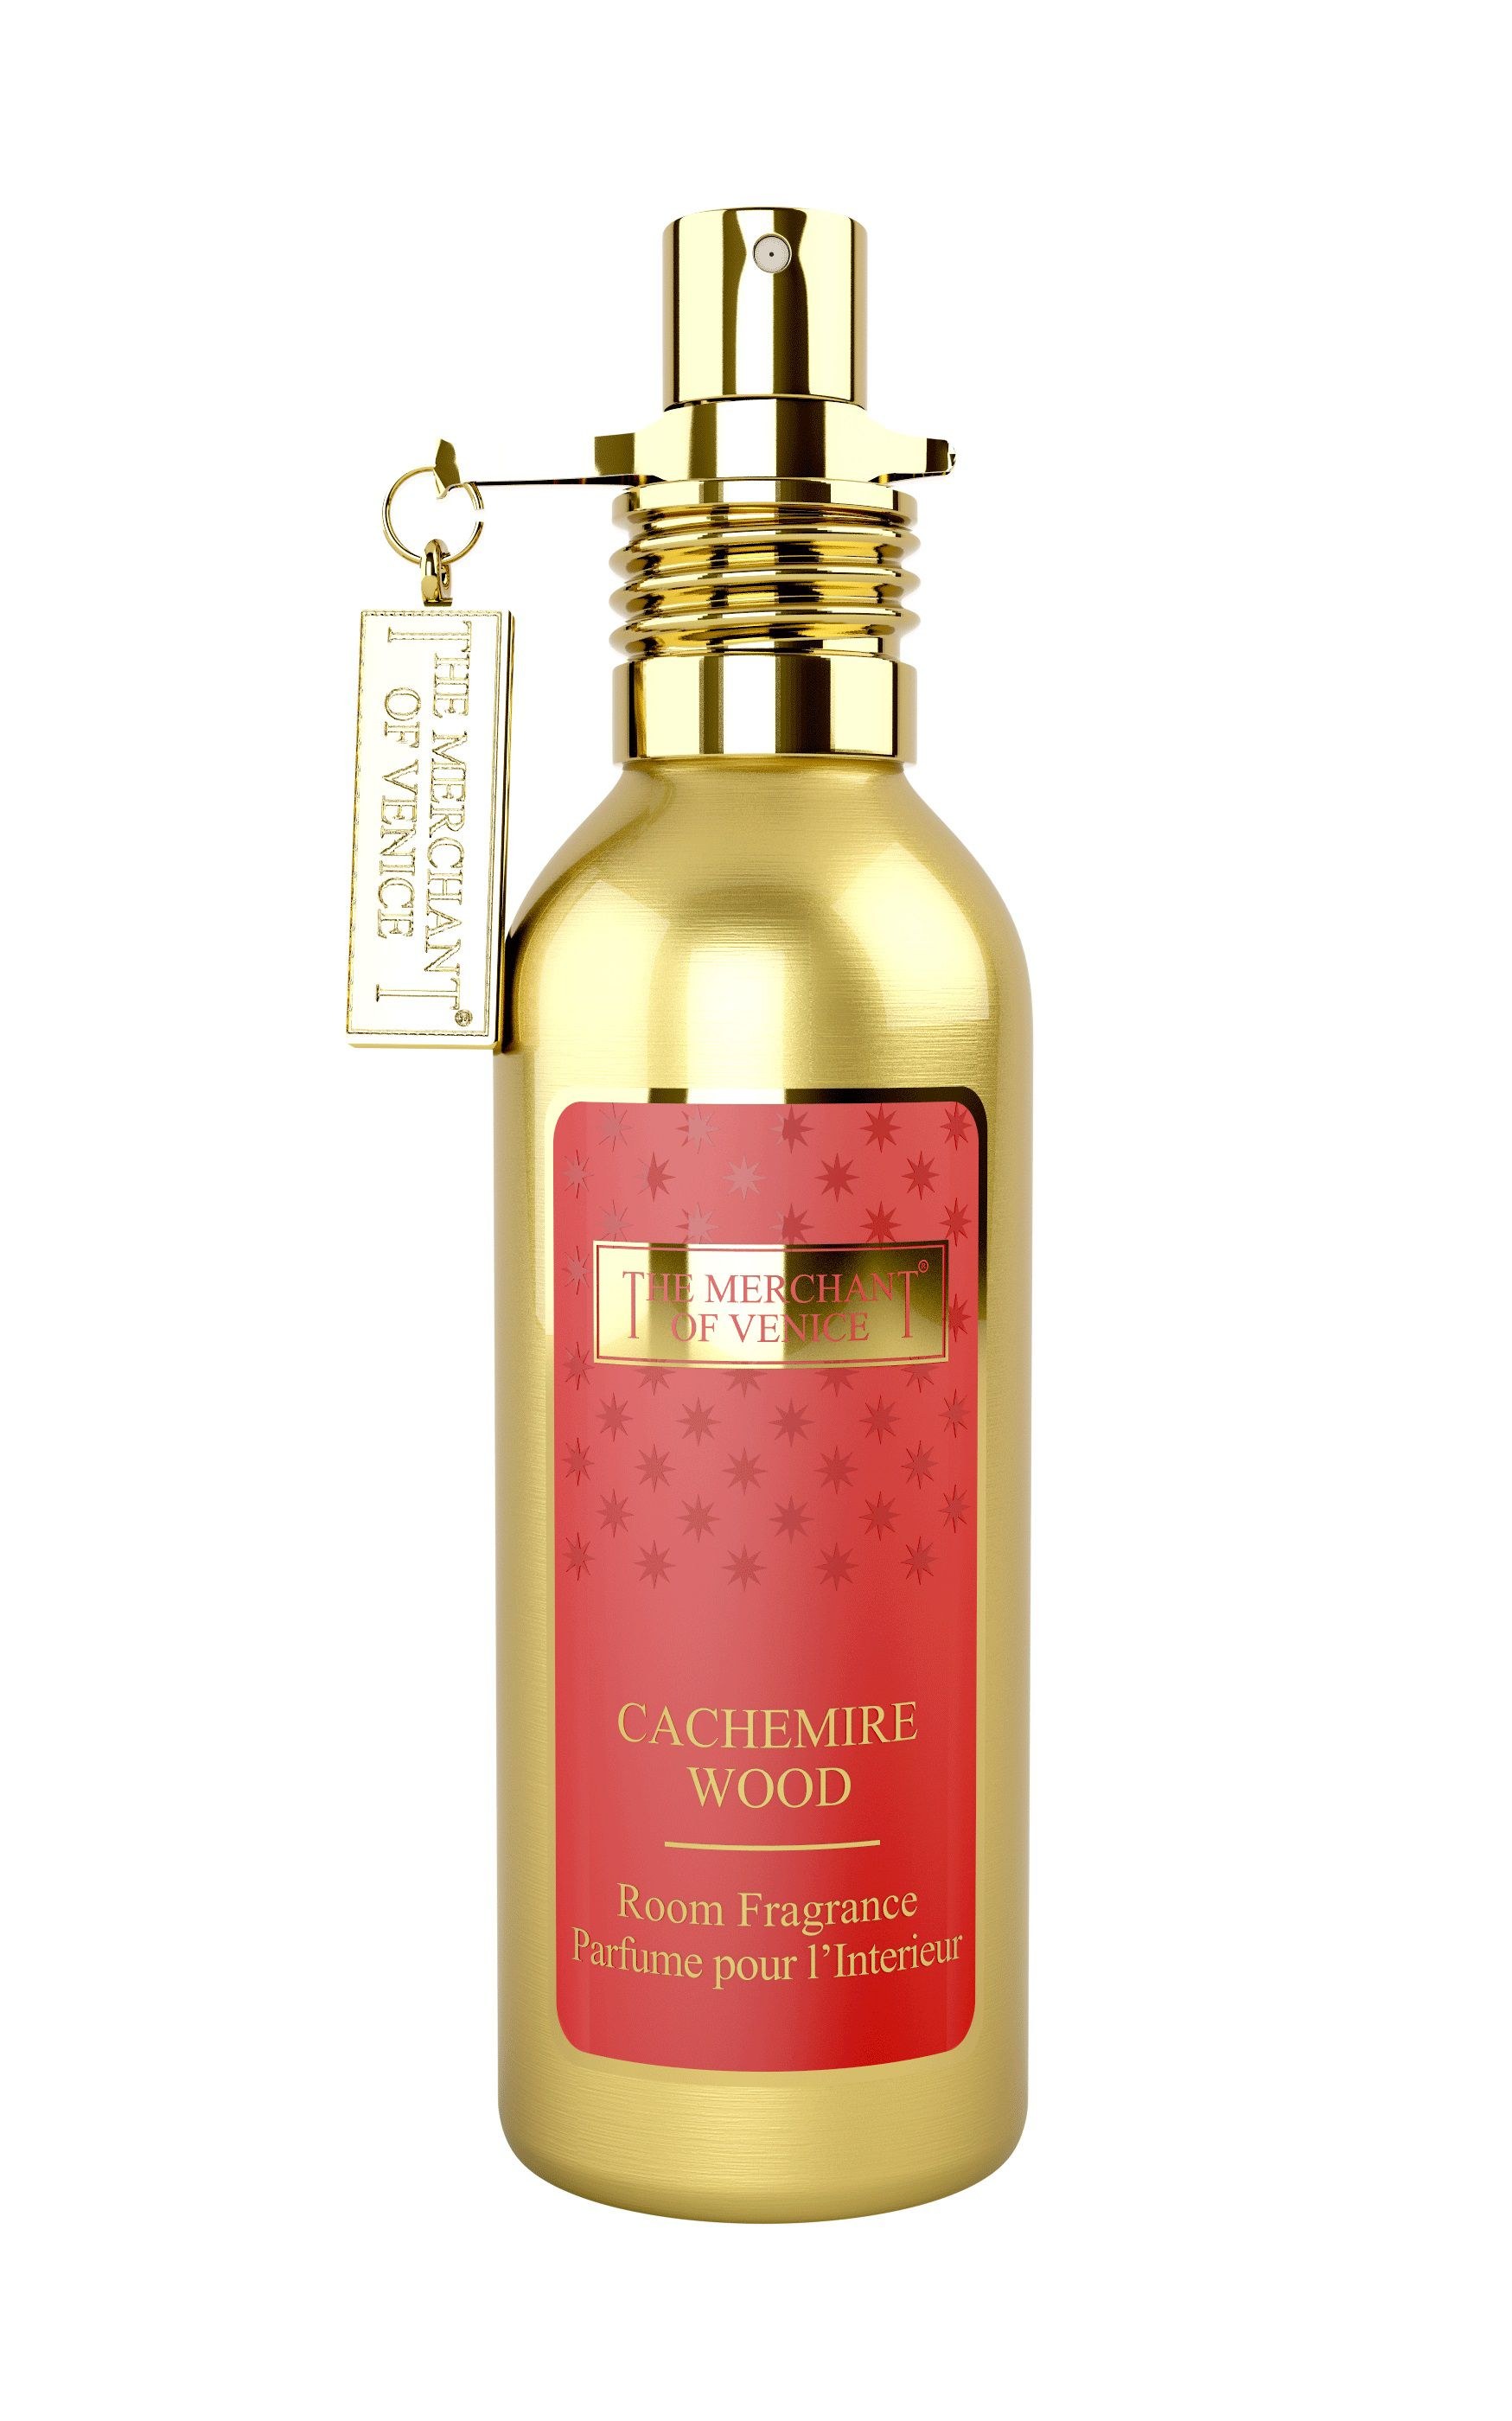 The Merchant Of Venice The Merchant Of Venice Cachemire Wood Natural Home Spray 100ml